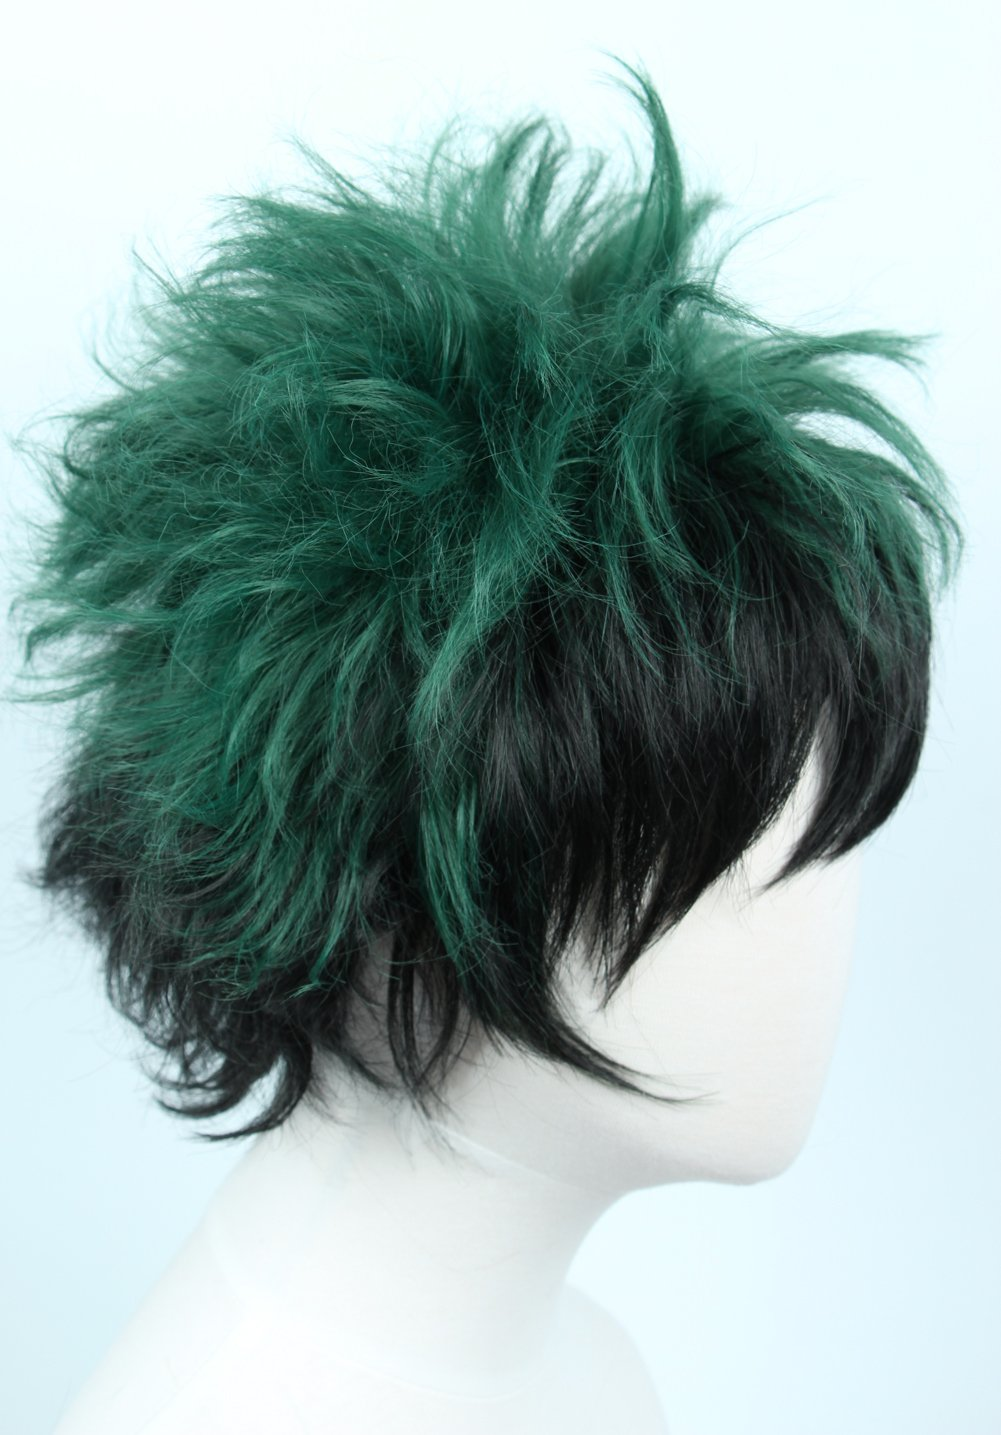 Linfairy Anime Cosplay Wig Short Black Green Halloween Costume Curly Wig by Linfairy (Image #3)